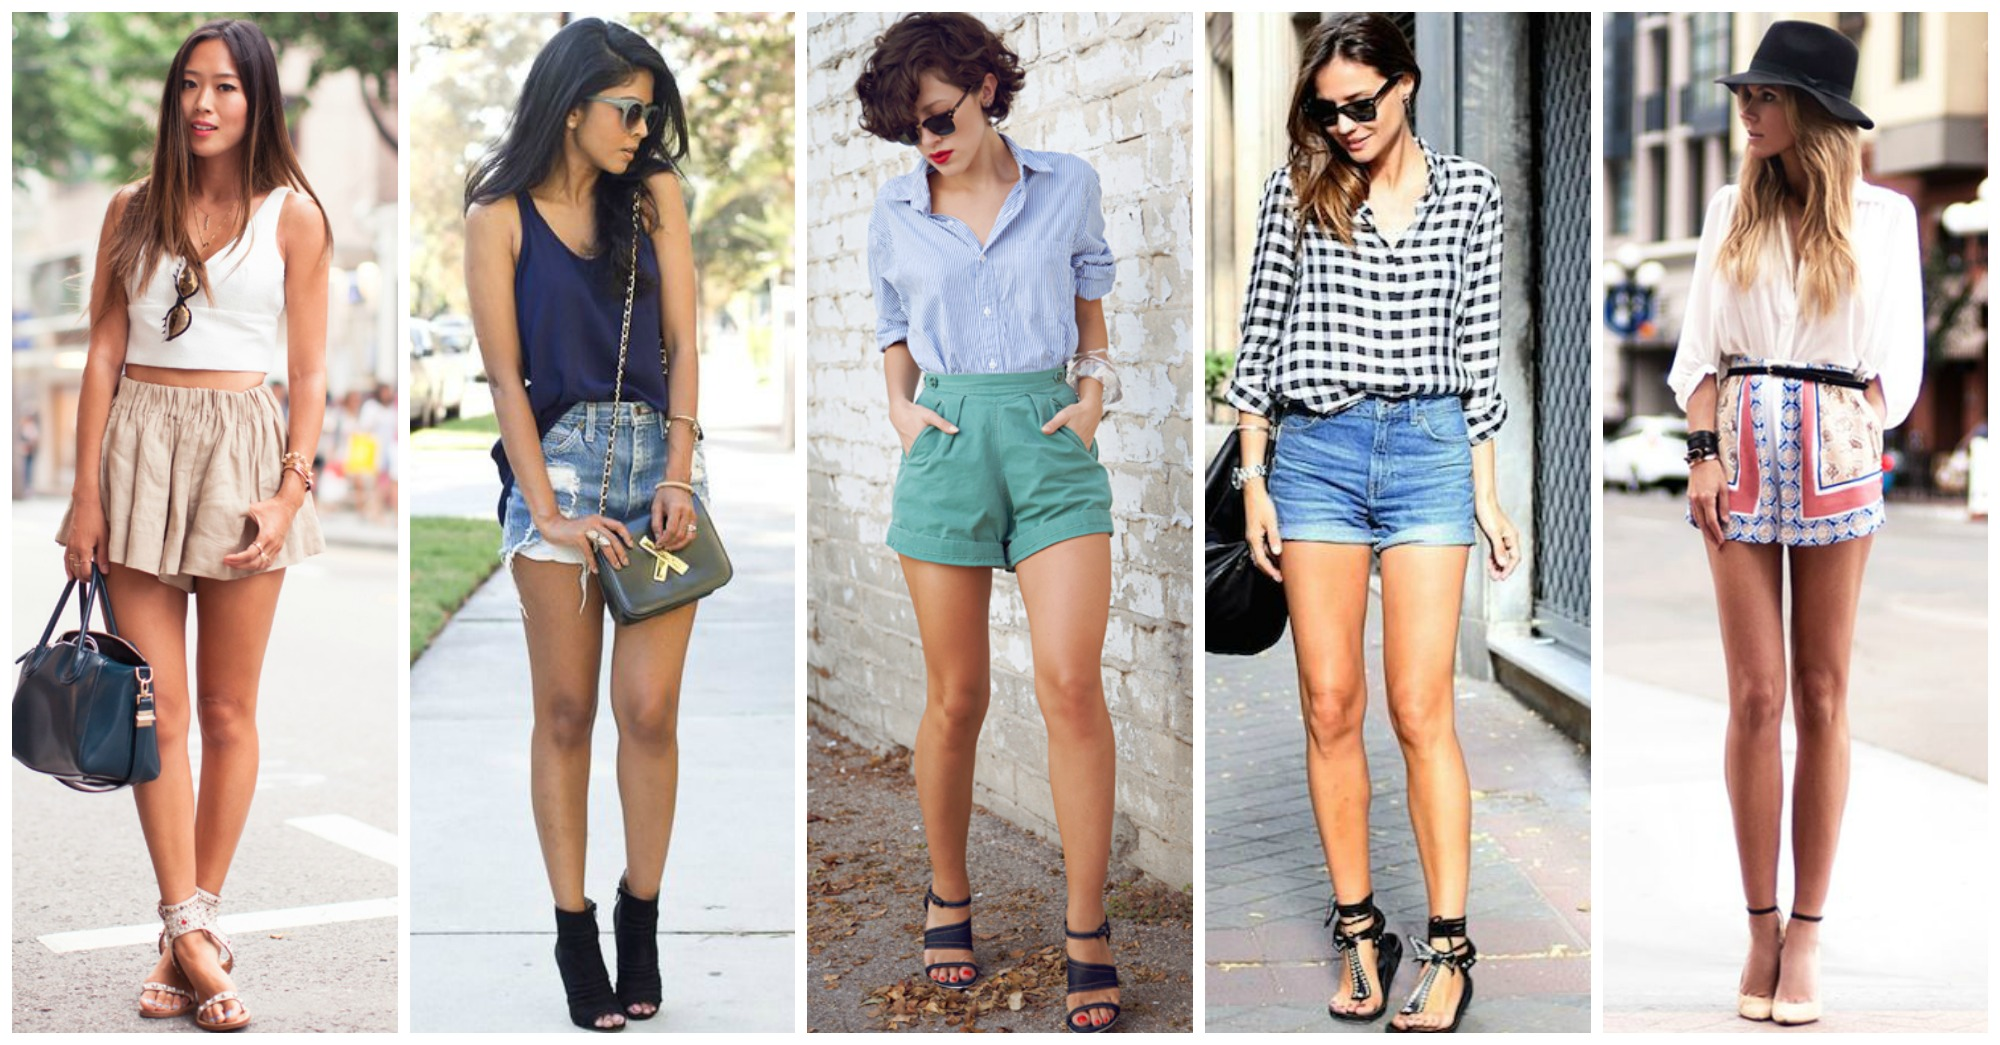 15 Lovely Ways to Style Your High Waist Shorts